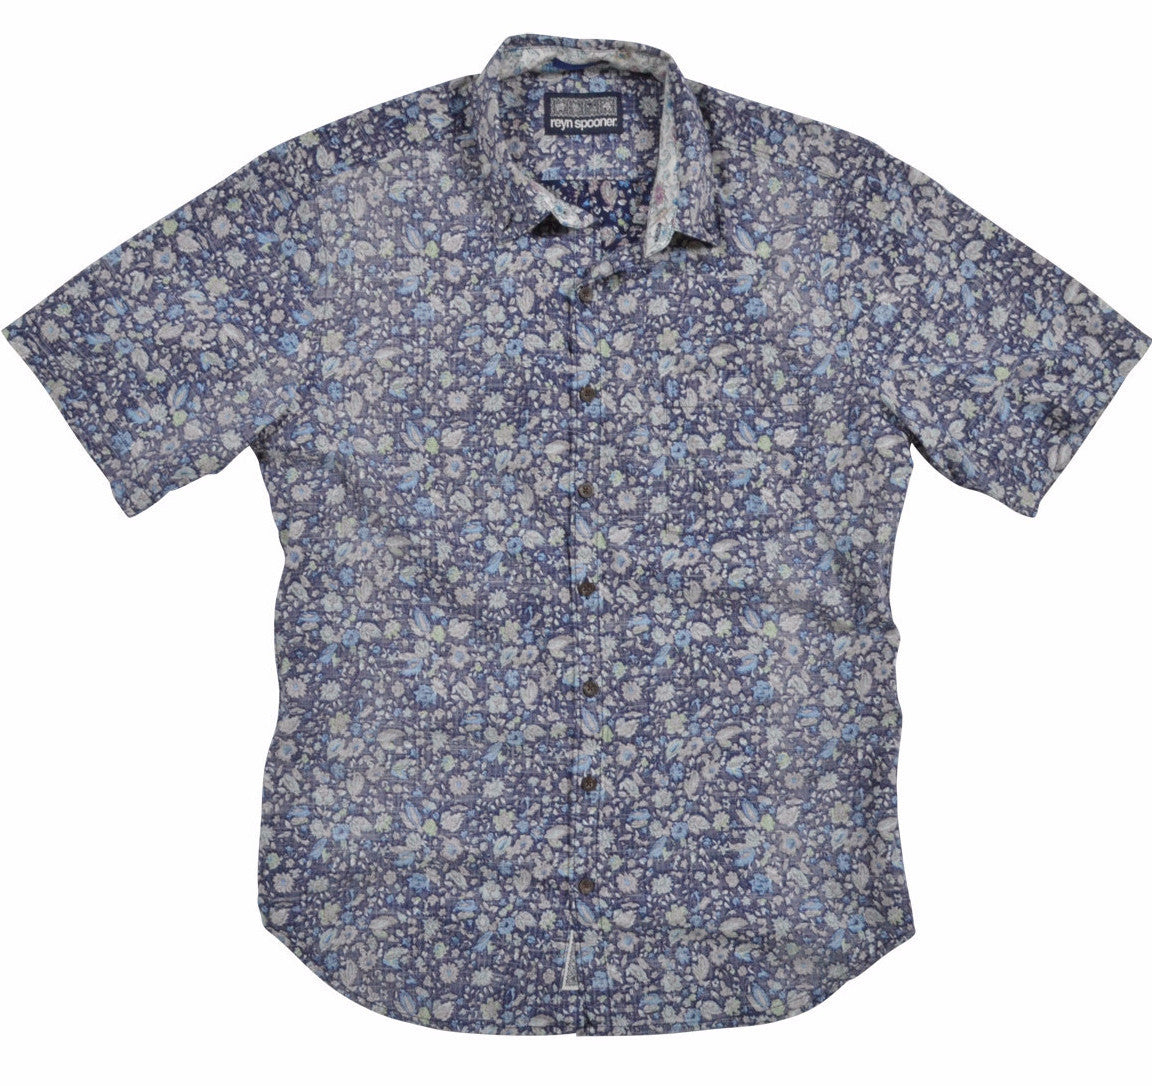 HO'ONIO / STANDARD FIT • SHORT SLEEVE - Zoomed